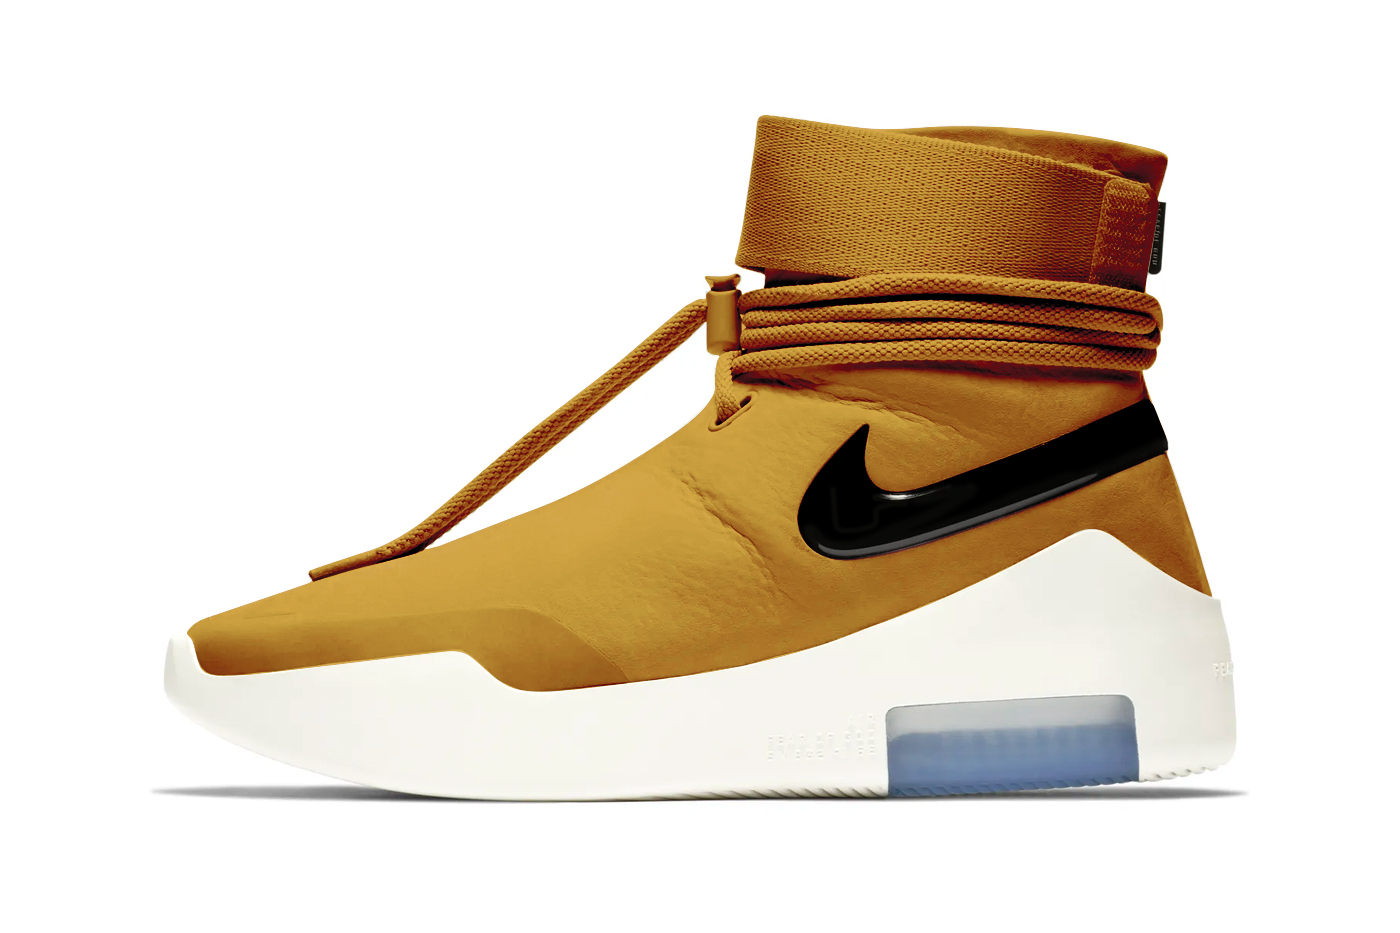 Nike Air Fear of God SA Shoot Around Wheat Gold Announcement Jerry Lorenzo